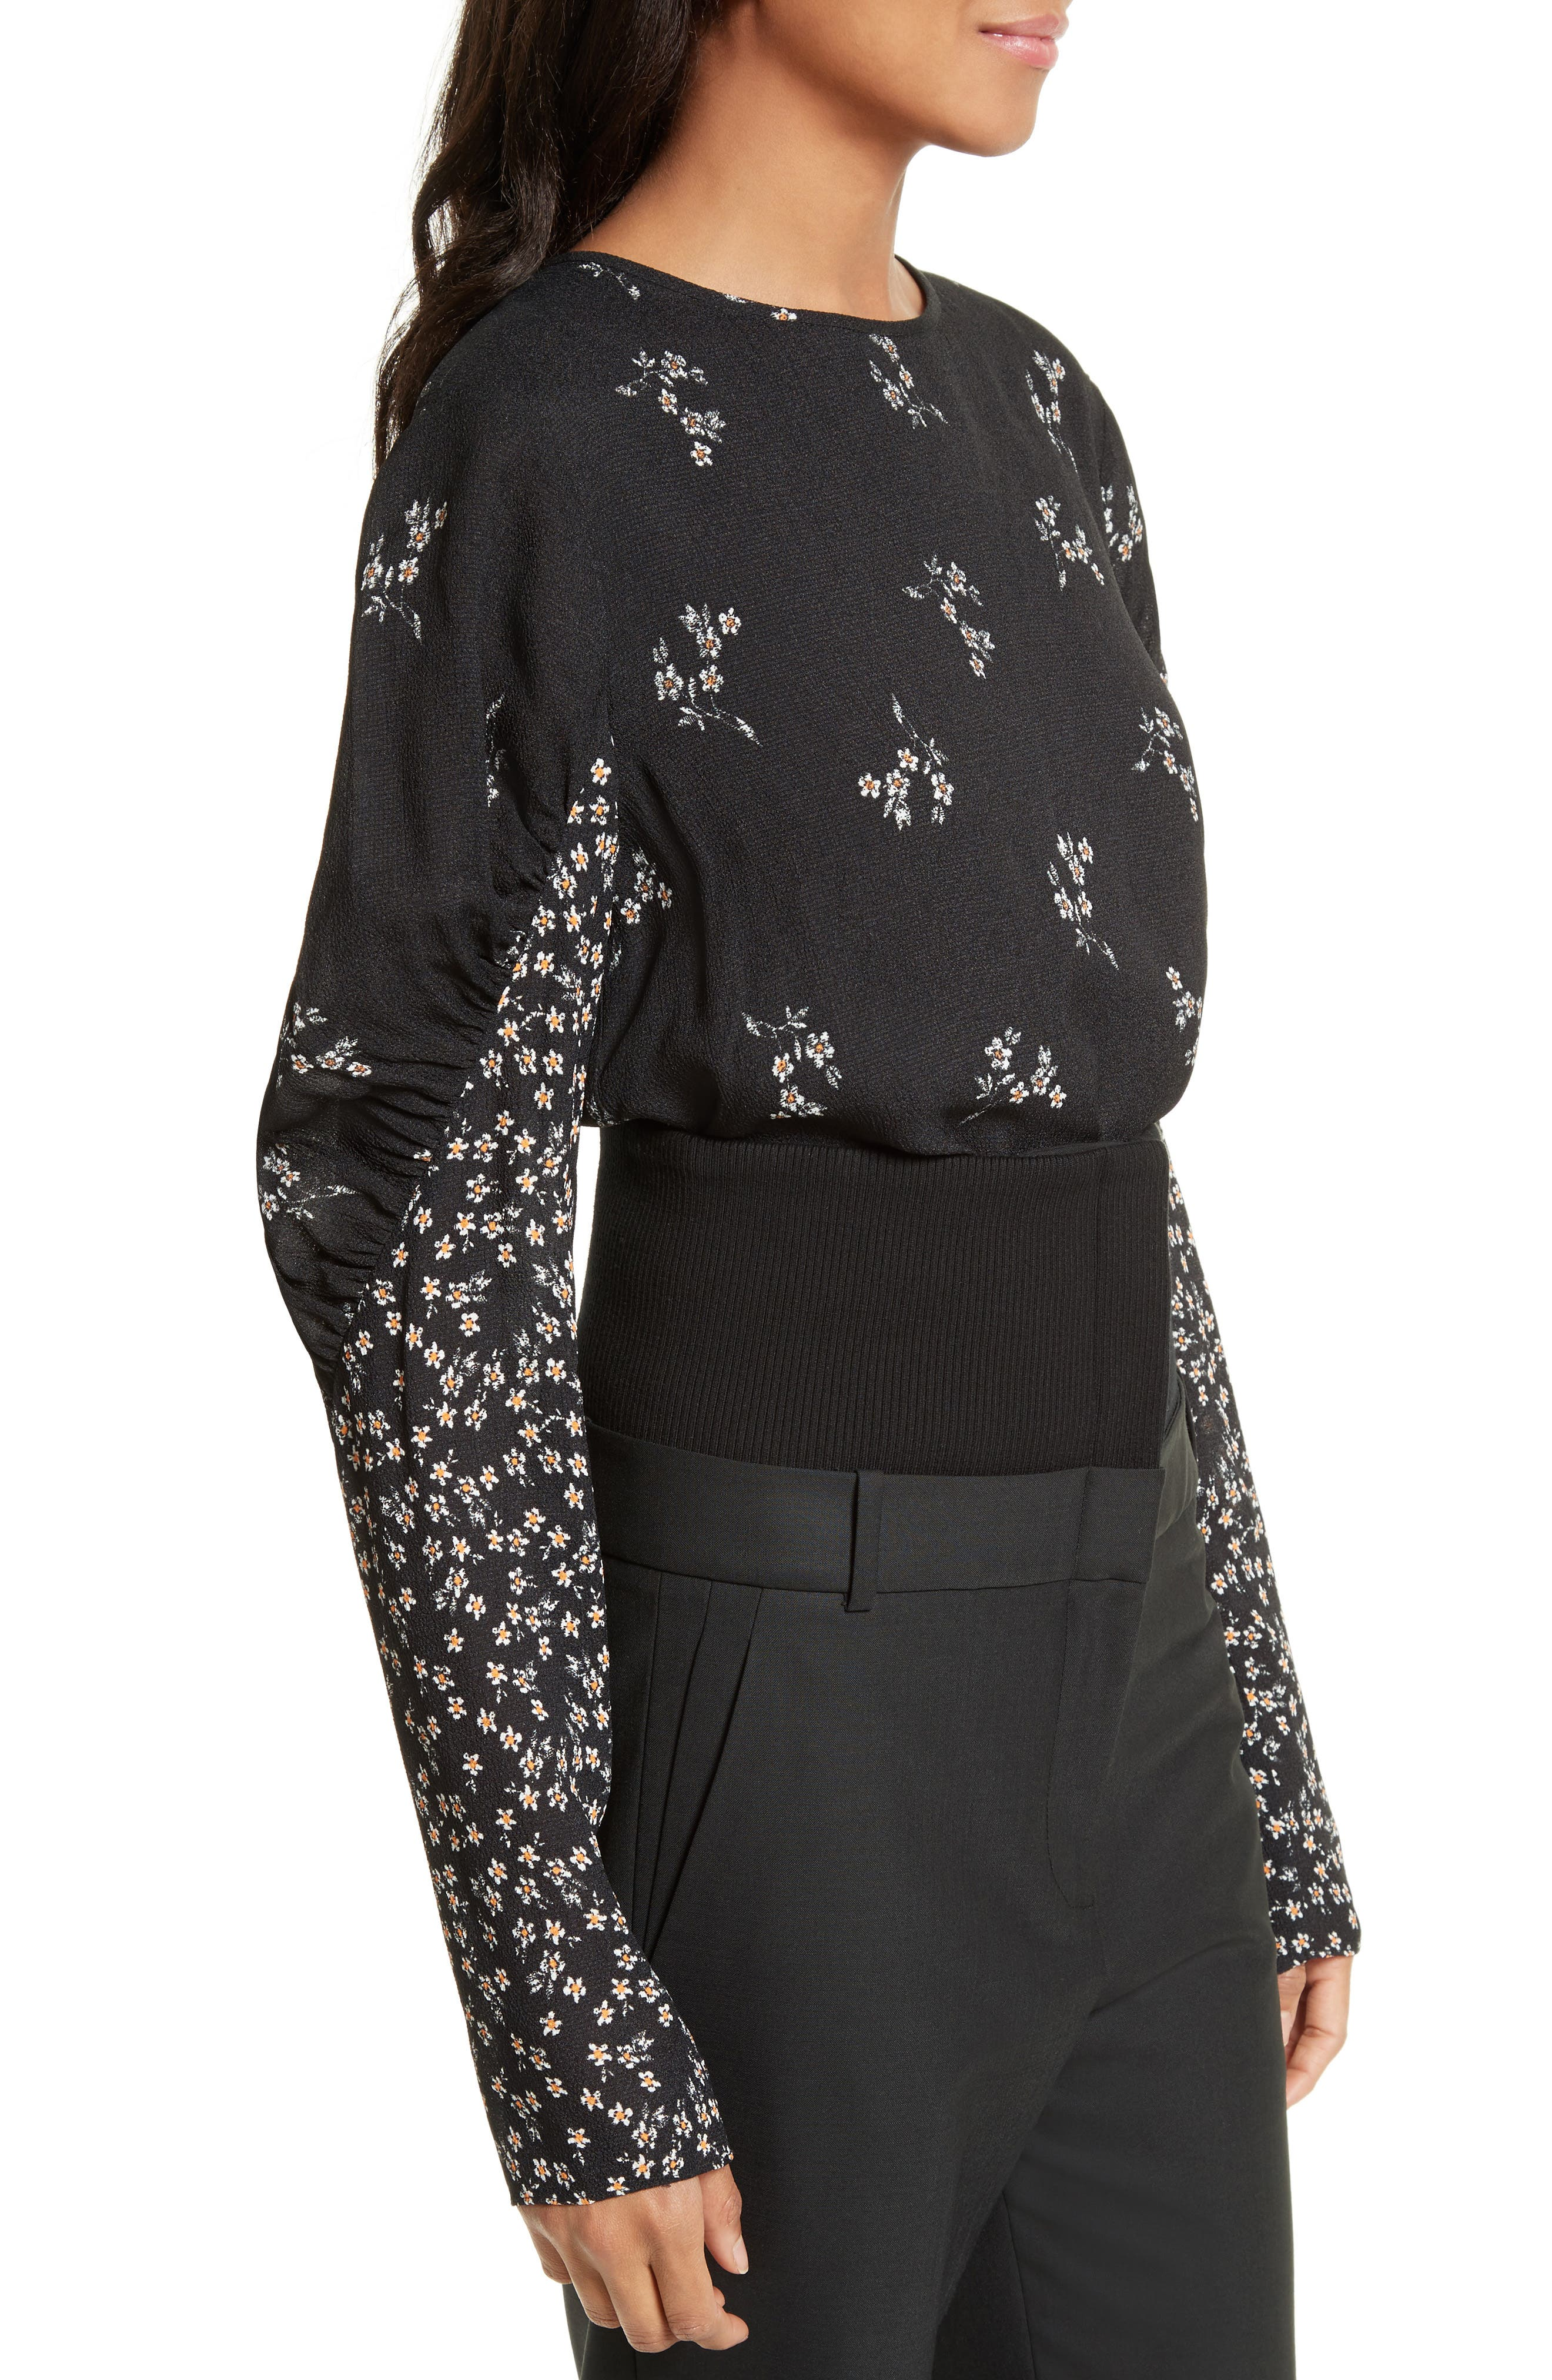 Florence Lili Floral Top,                             Alternate thumbnail 3, color,                             006